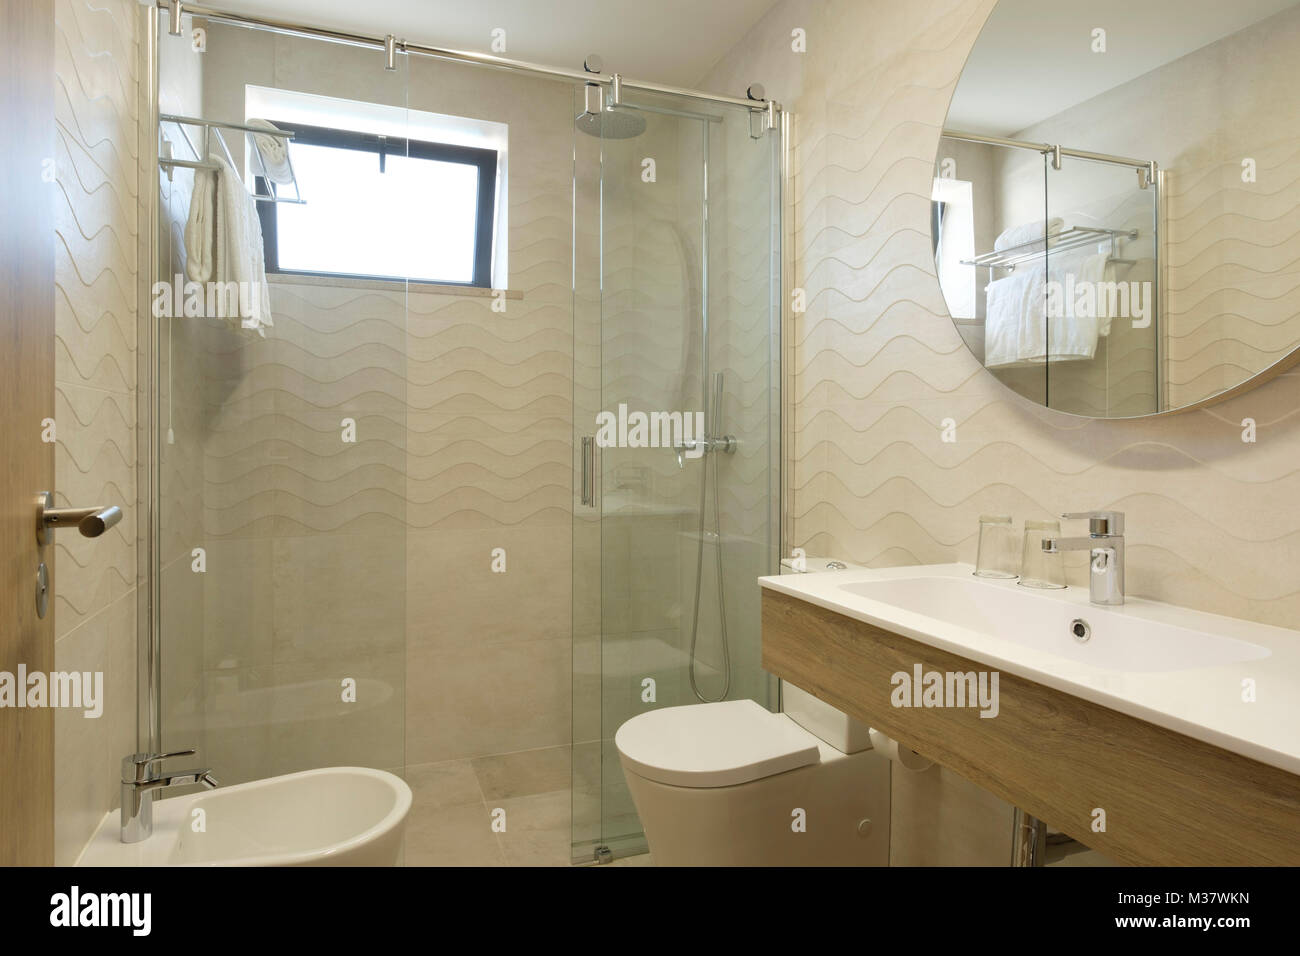 Luxury Mirror Modern Shower Cubicle Washbasin Stock Photos & Luxury ...